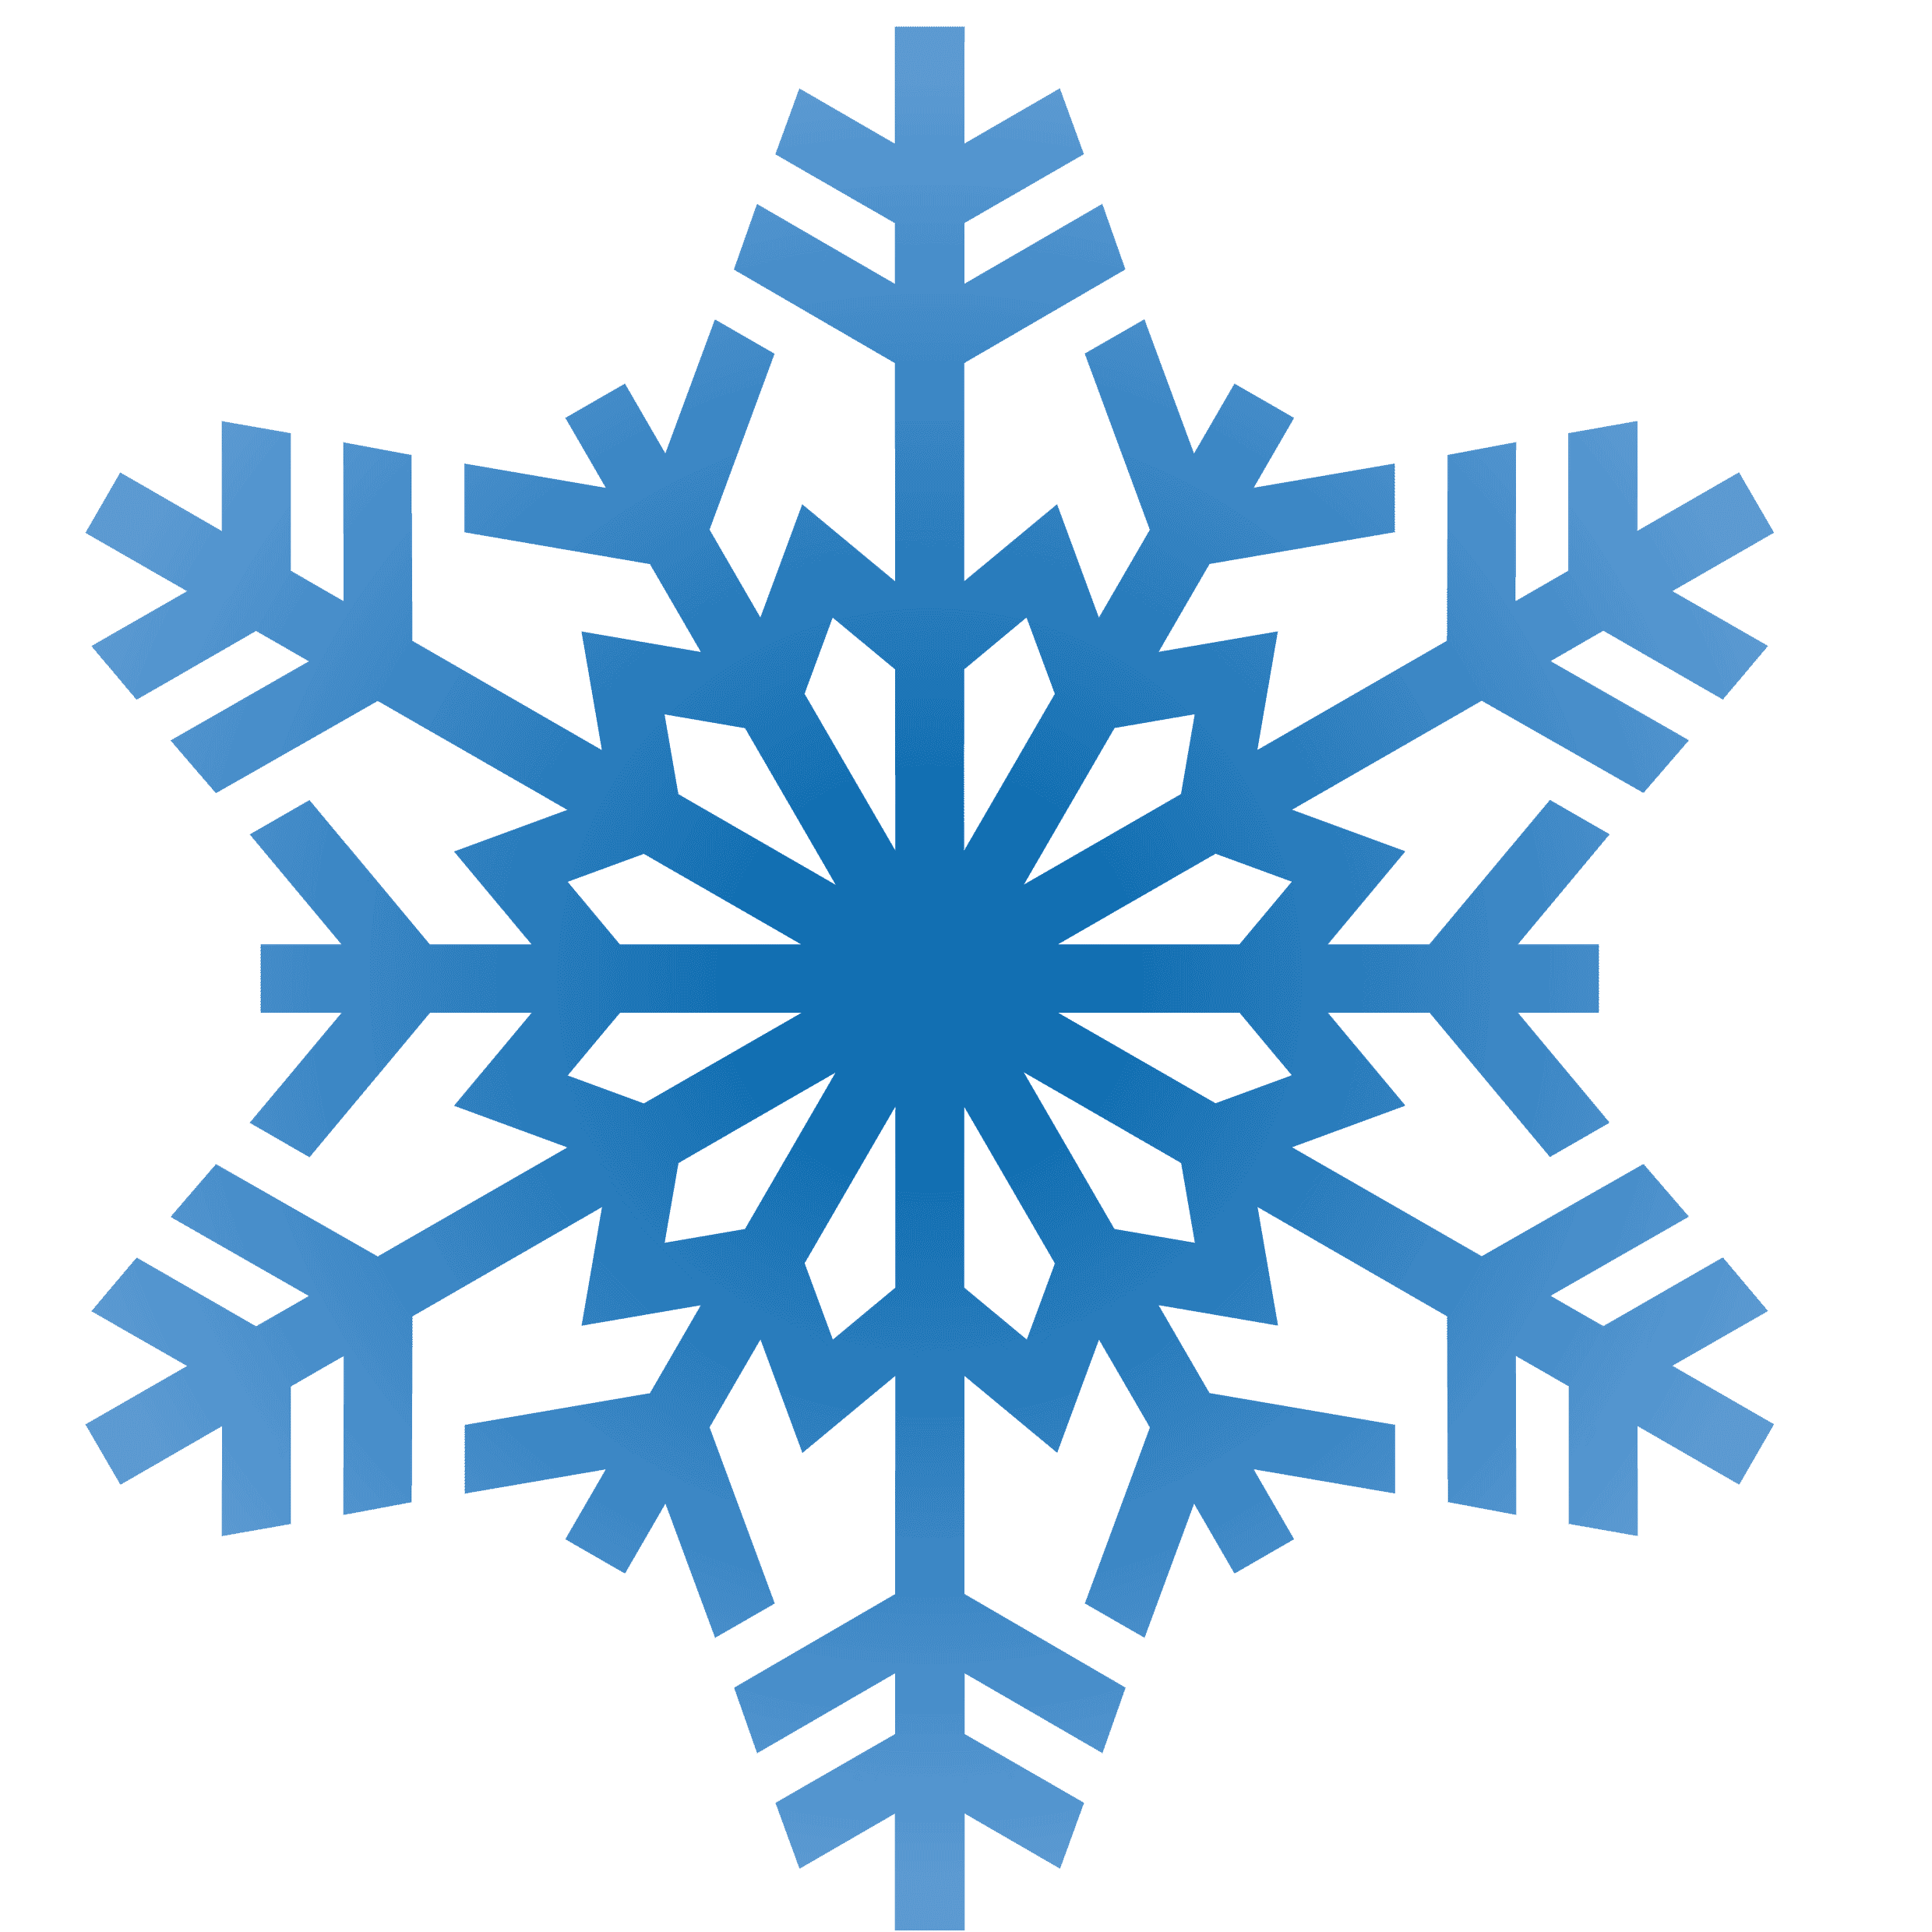 Free Blue Snowflake Cliparts, Download Free Clip Art, Free.